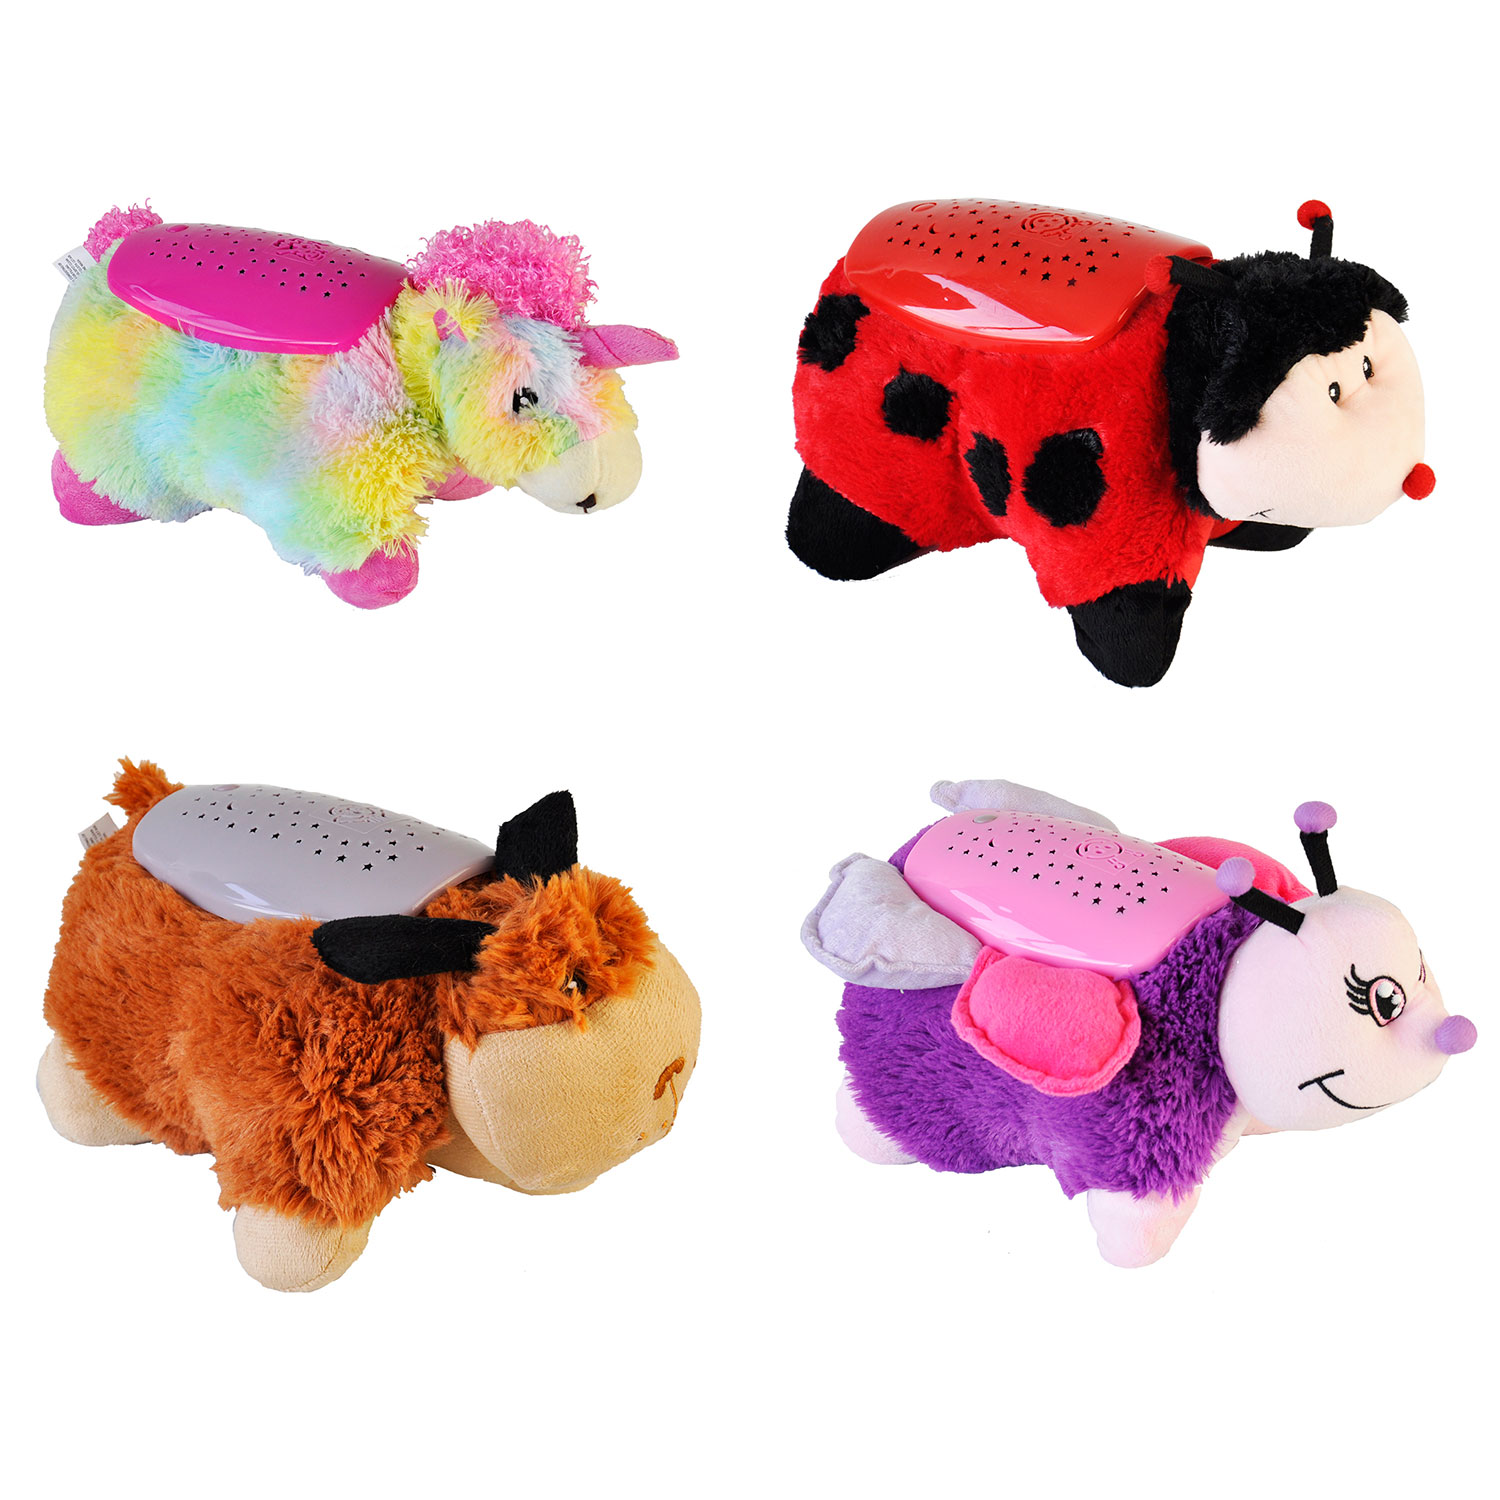 Animal Light Pillows : ANIMAL CUDDLE PET PILLOW CUSHION DREAM NIGHT LIGHT BED LITES KIDS CHILDRENS TOY eBay